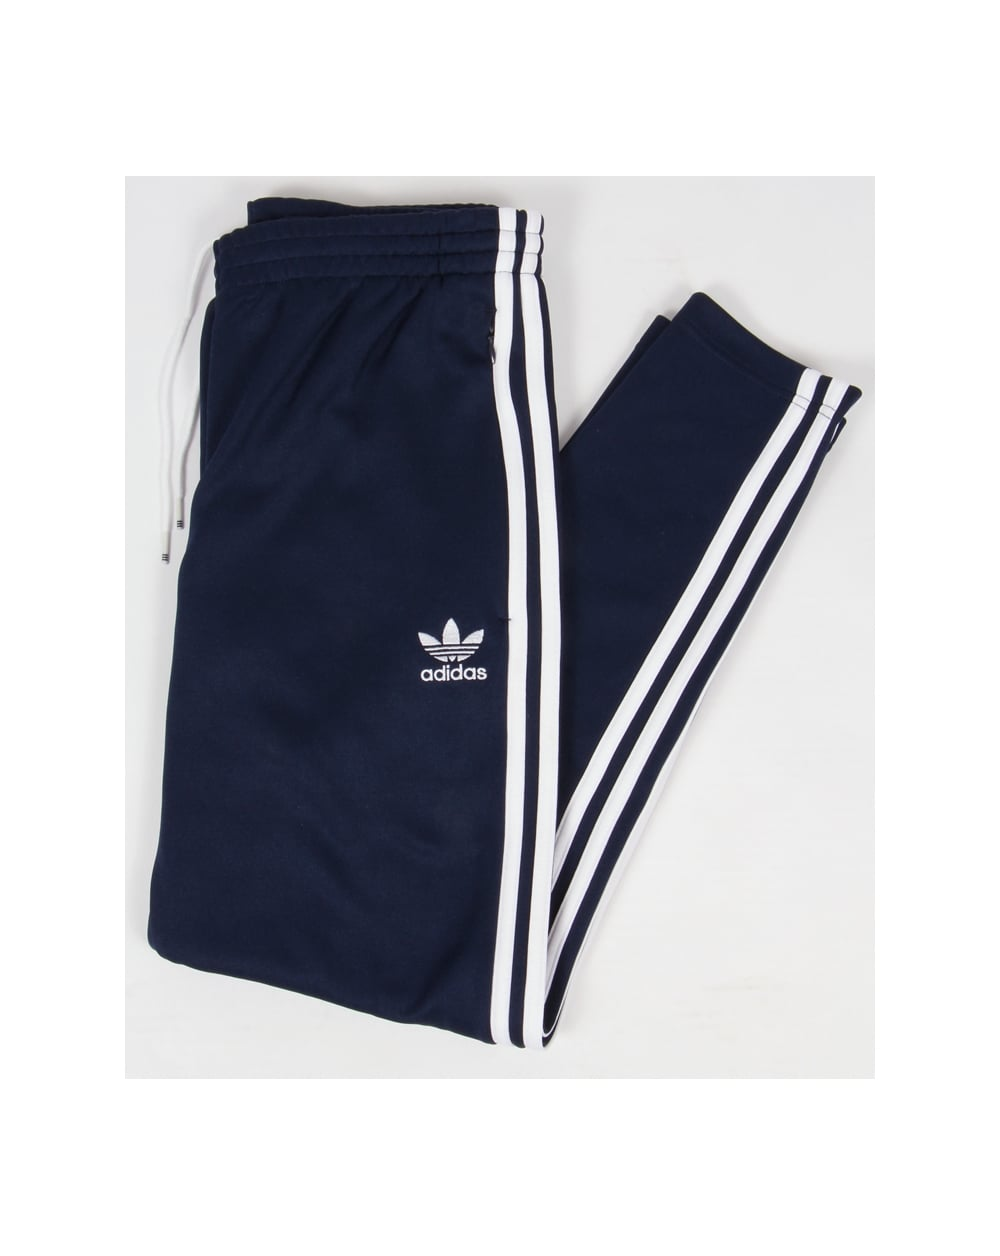 adidas originals superstar pants